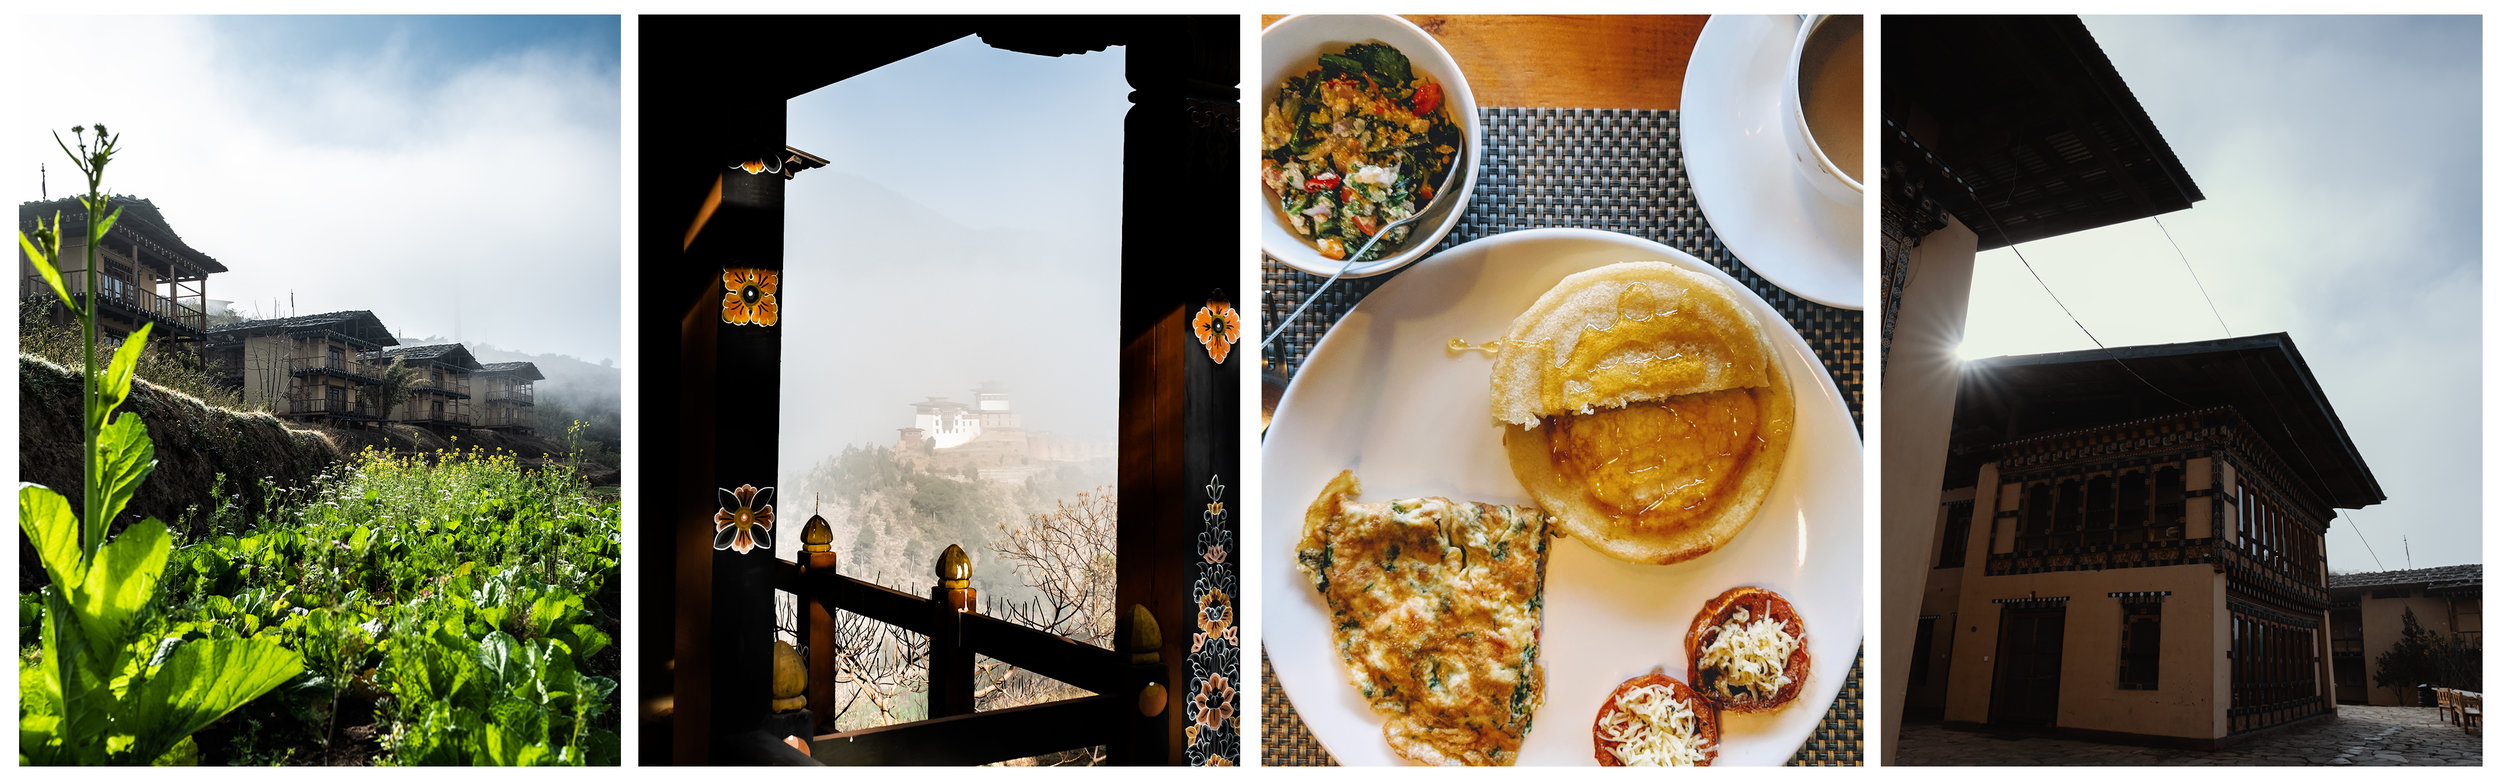 Eco Lodge  Rooms, View of Wangdue fortress, Breakfast, Courtyard